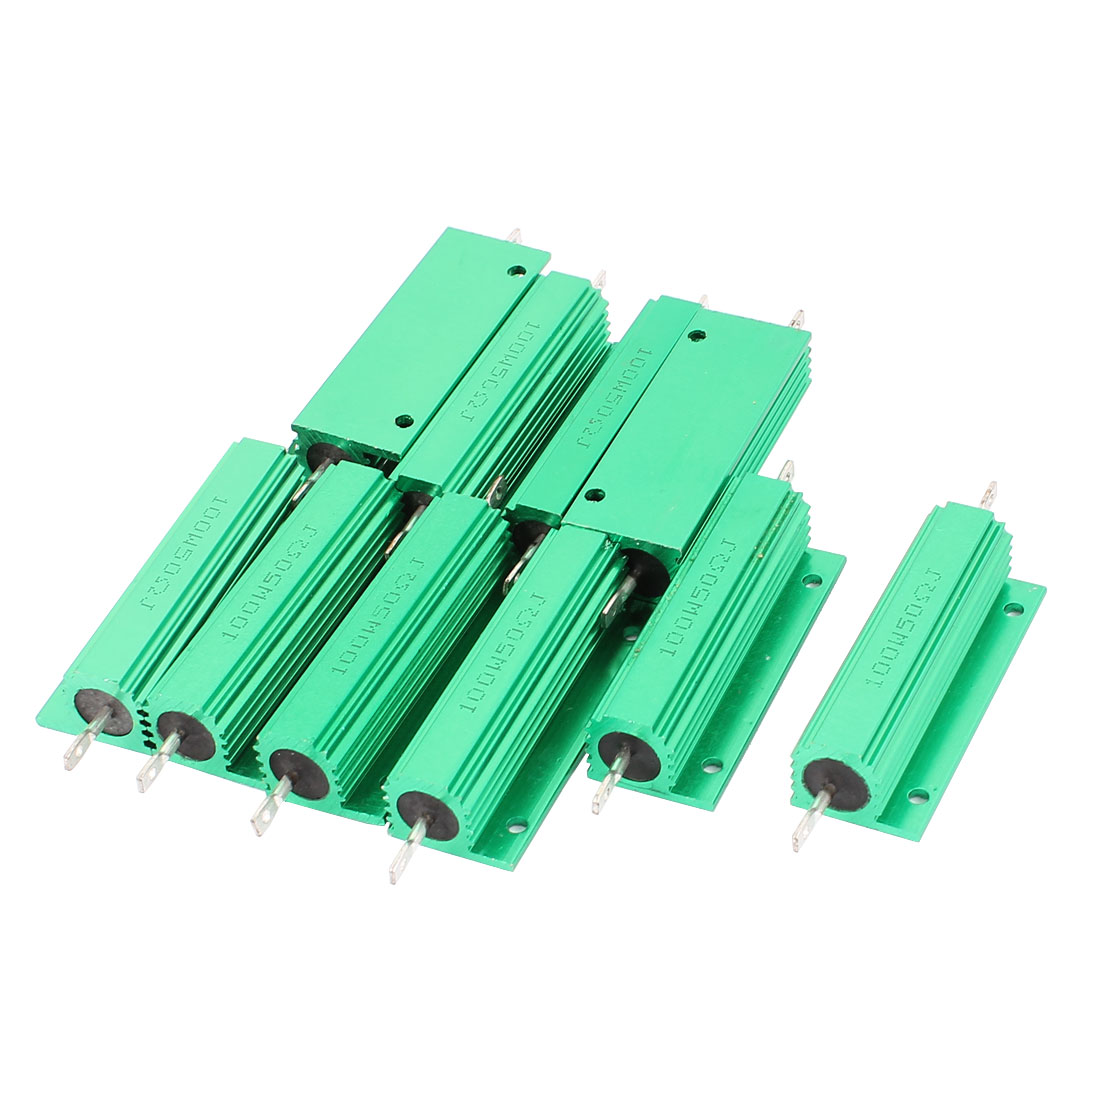 10Pcs Aluminum Housed 100W Watt 50 Ohm 5% Tolerance Fixed Resistor Green